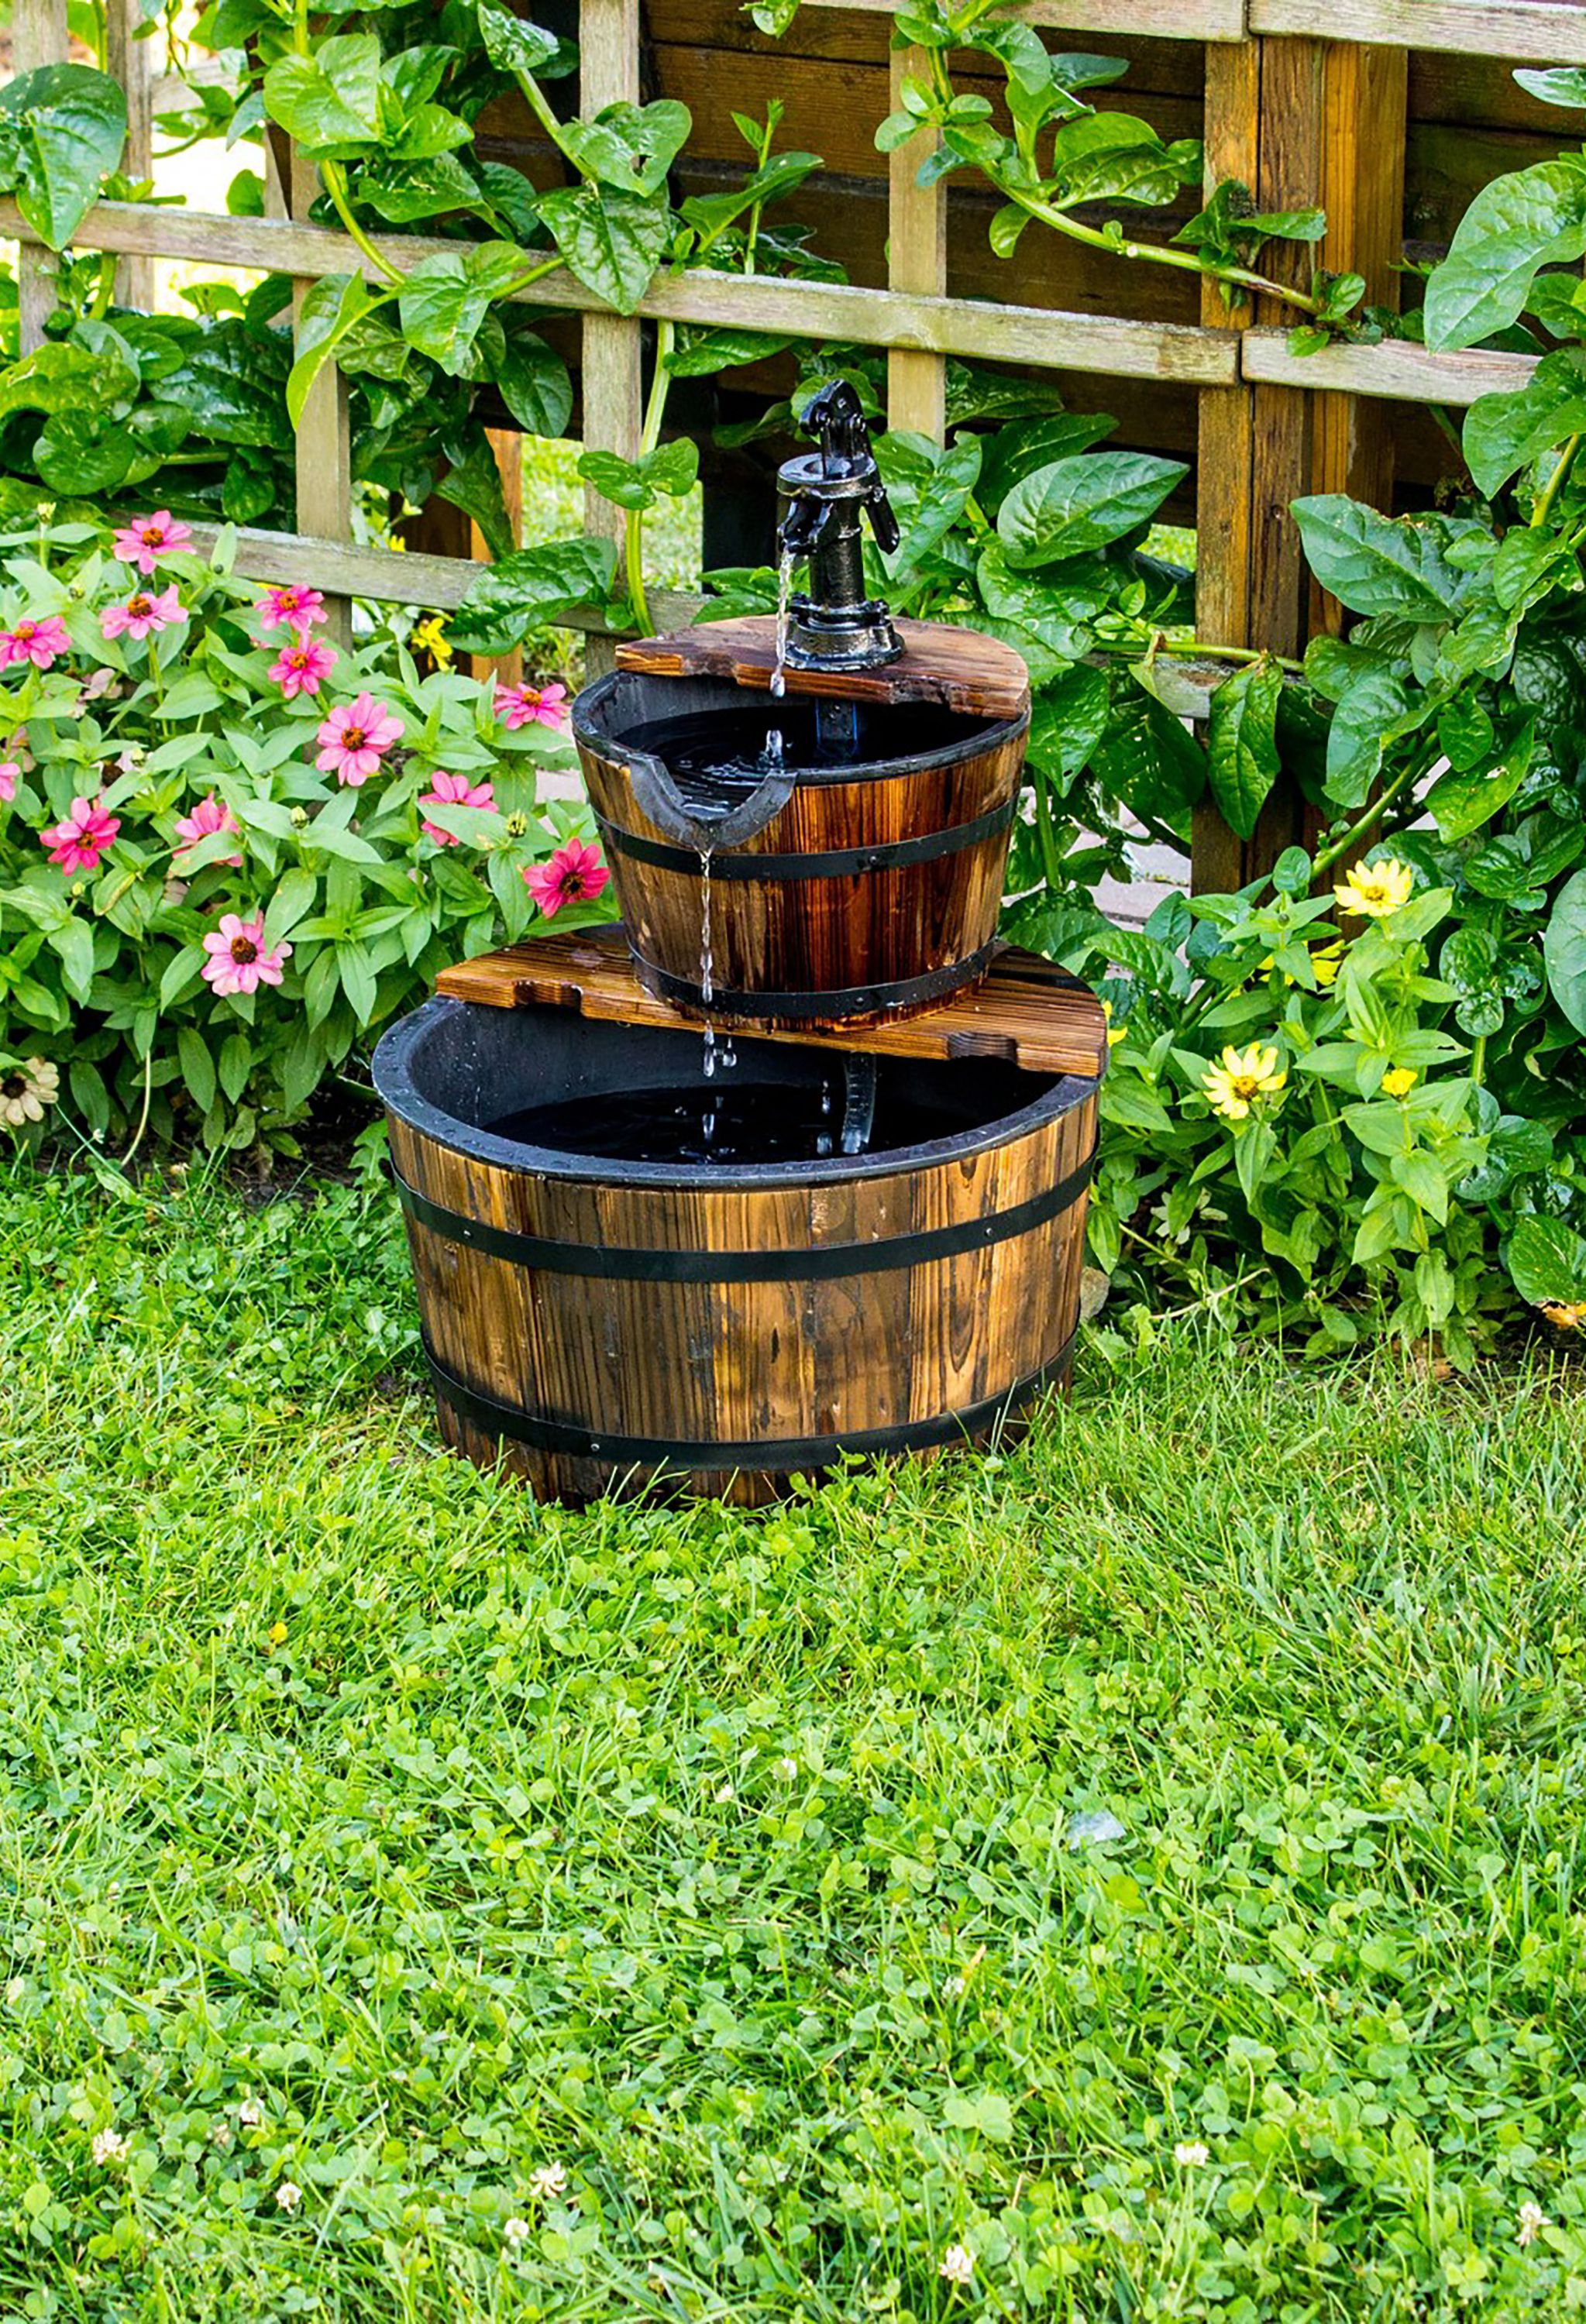 22 Outdoor Fountain Ideas How To Make A Garden Fountain For Your intended for Small Backyard Fountain Ideas